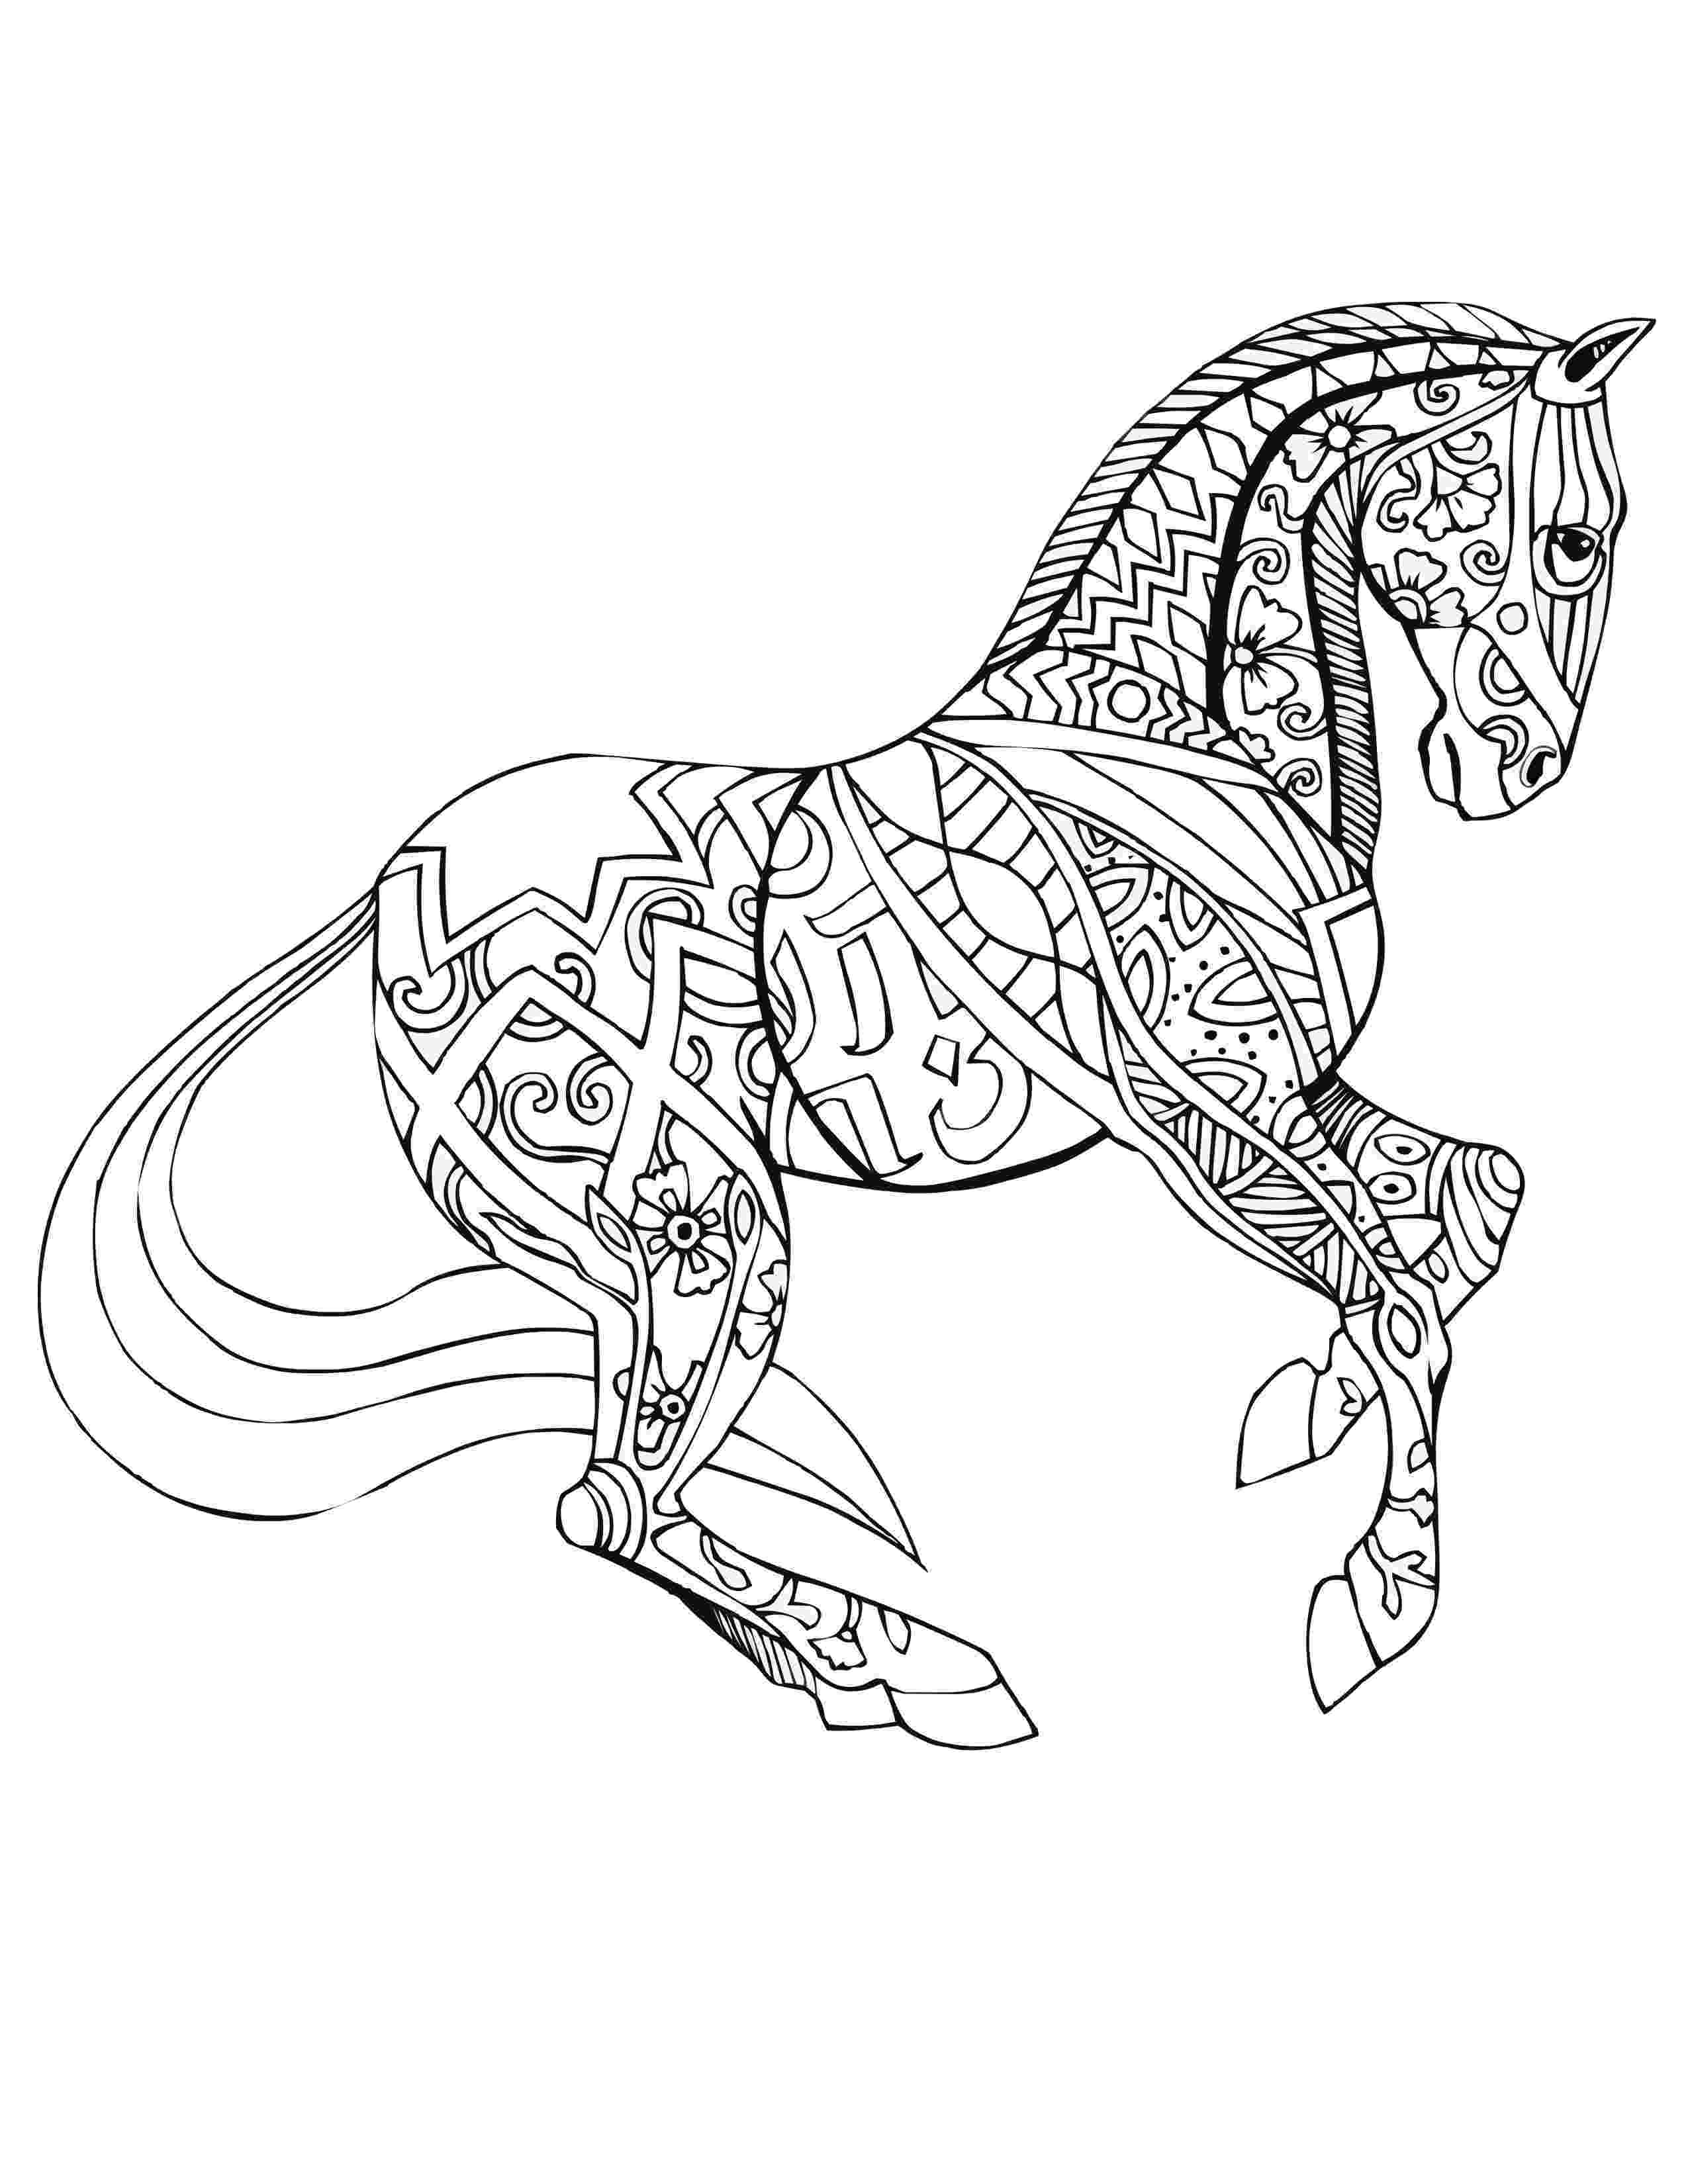 horse coloring pages to print for free woman and mare horse coloring page free printable coloring horse pages for print free to